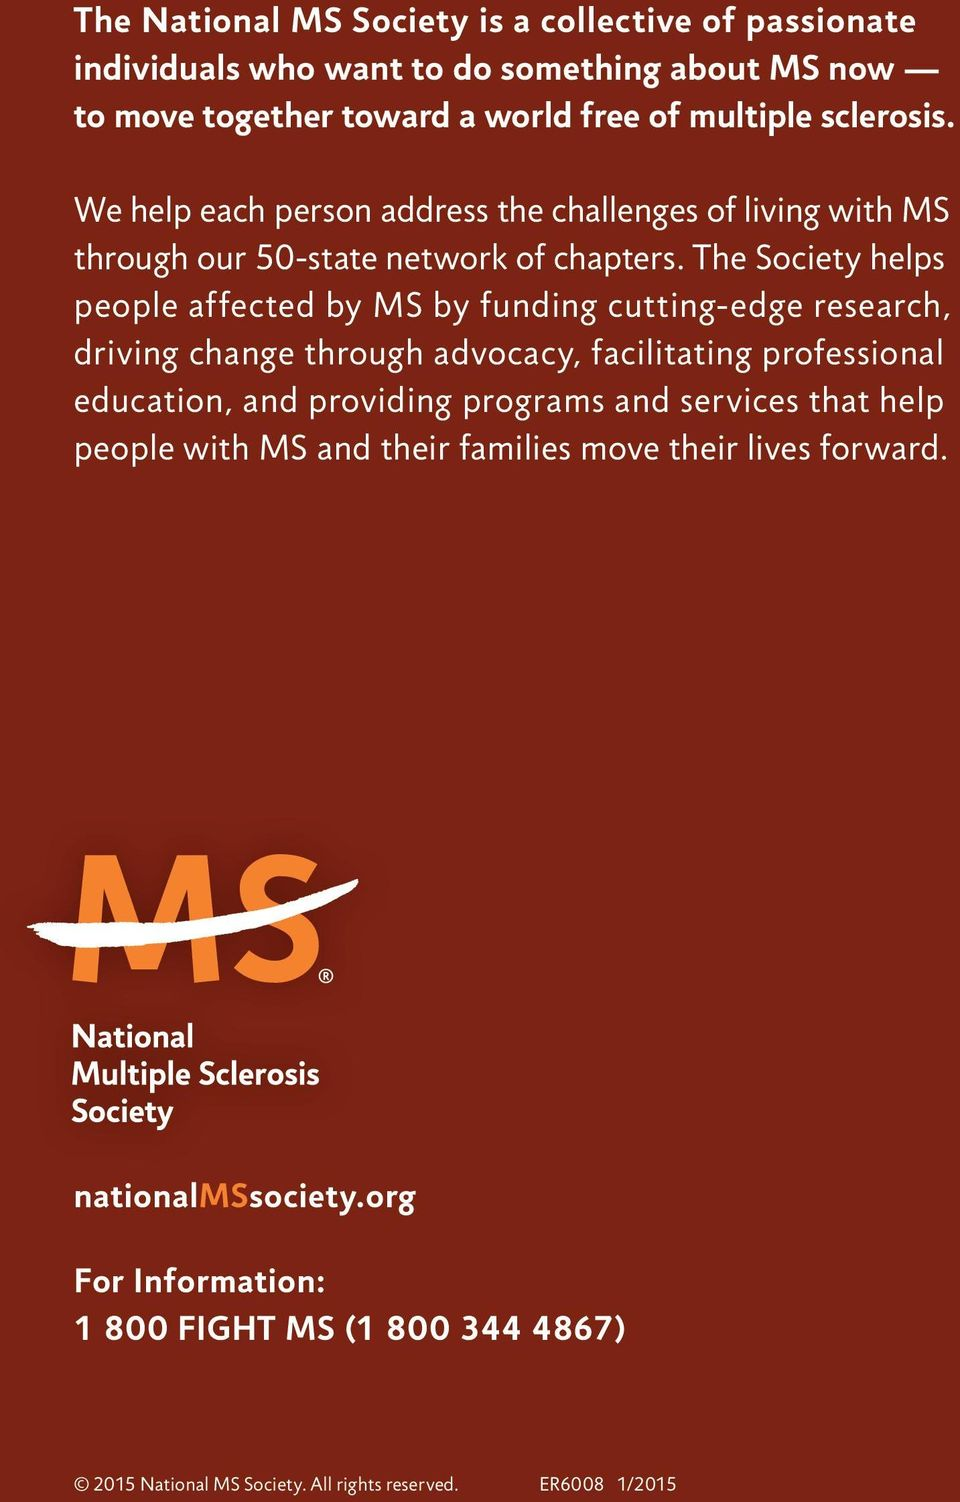 The Society helps people affected by MS by funding cutting-edge research, driving change through advocacy, facilitating professional education, and providing programs